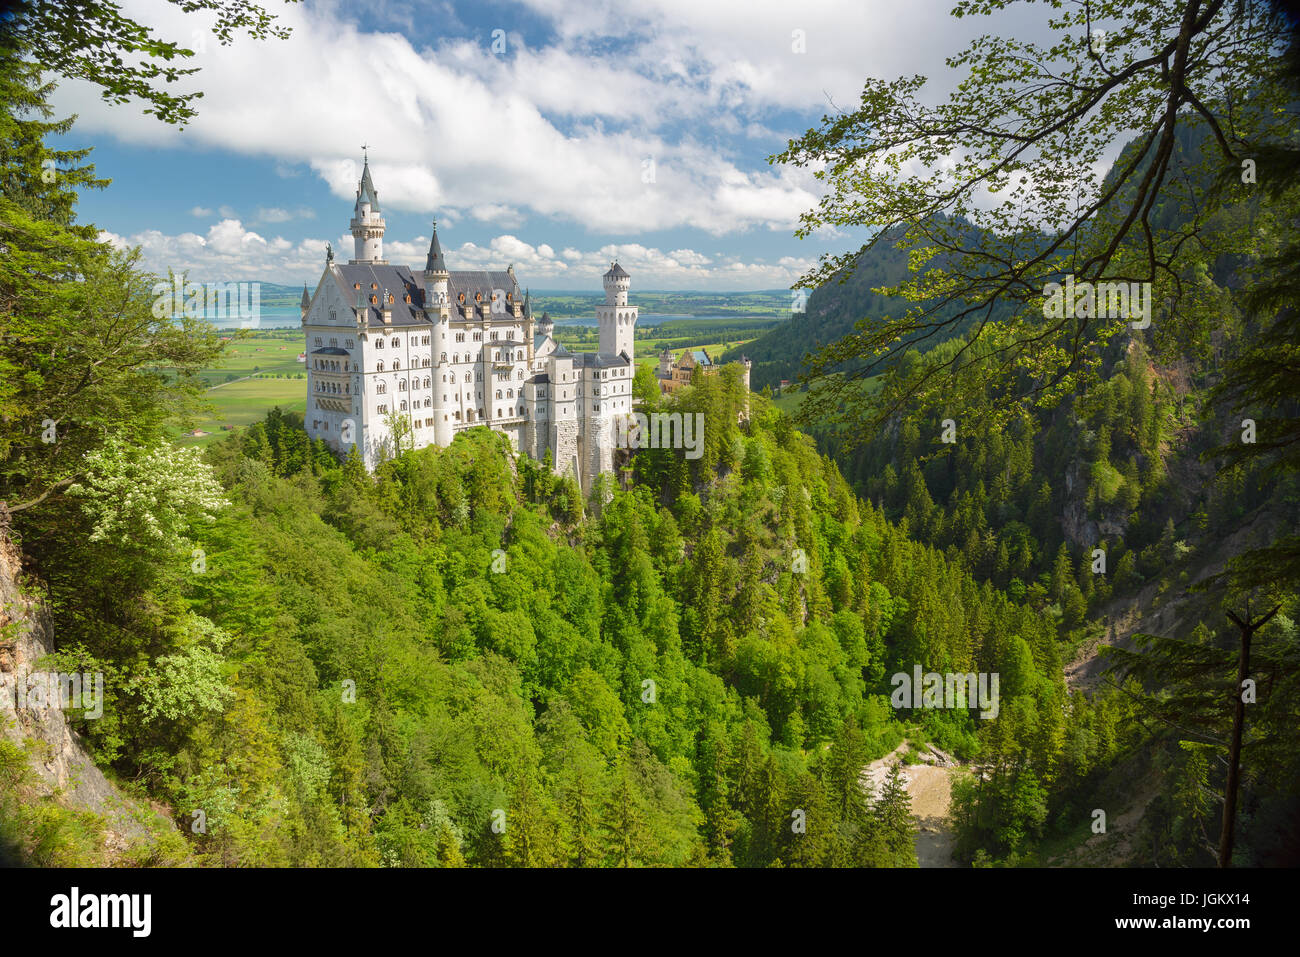 Picturesque nature landscape with Neuschwanstein Castle. Germany. - Stock Image